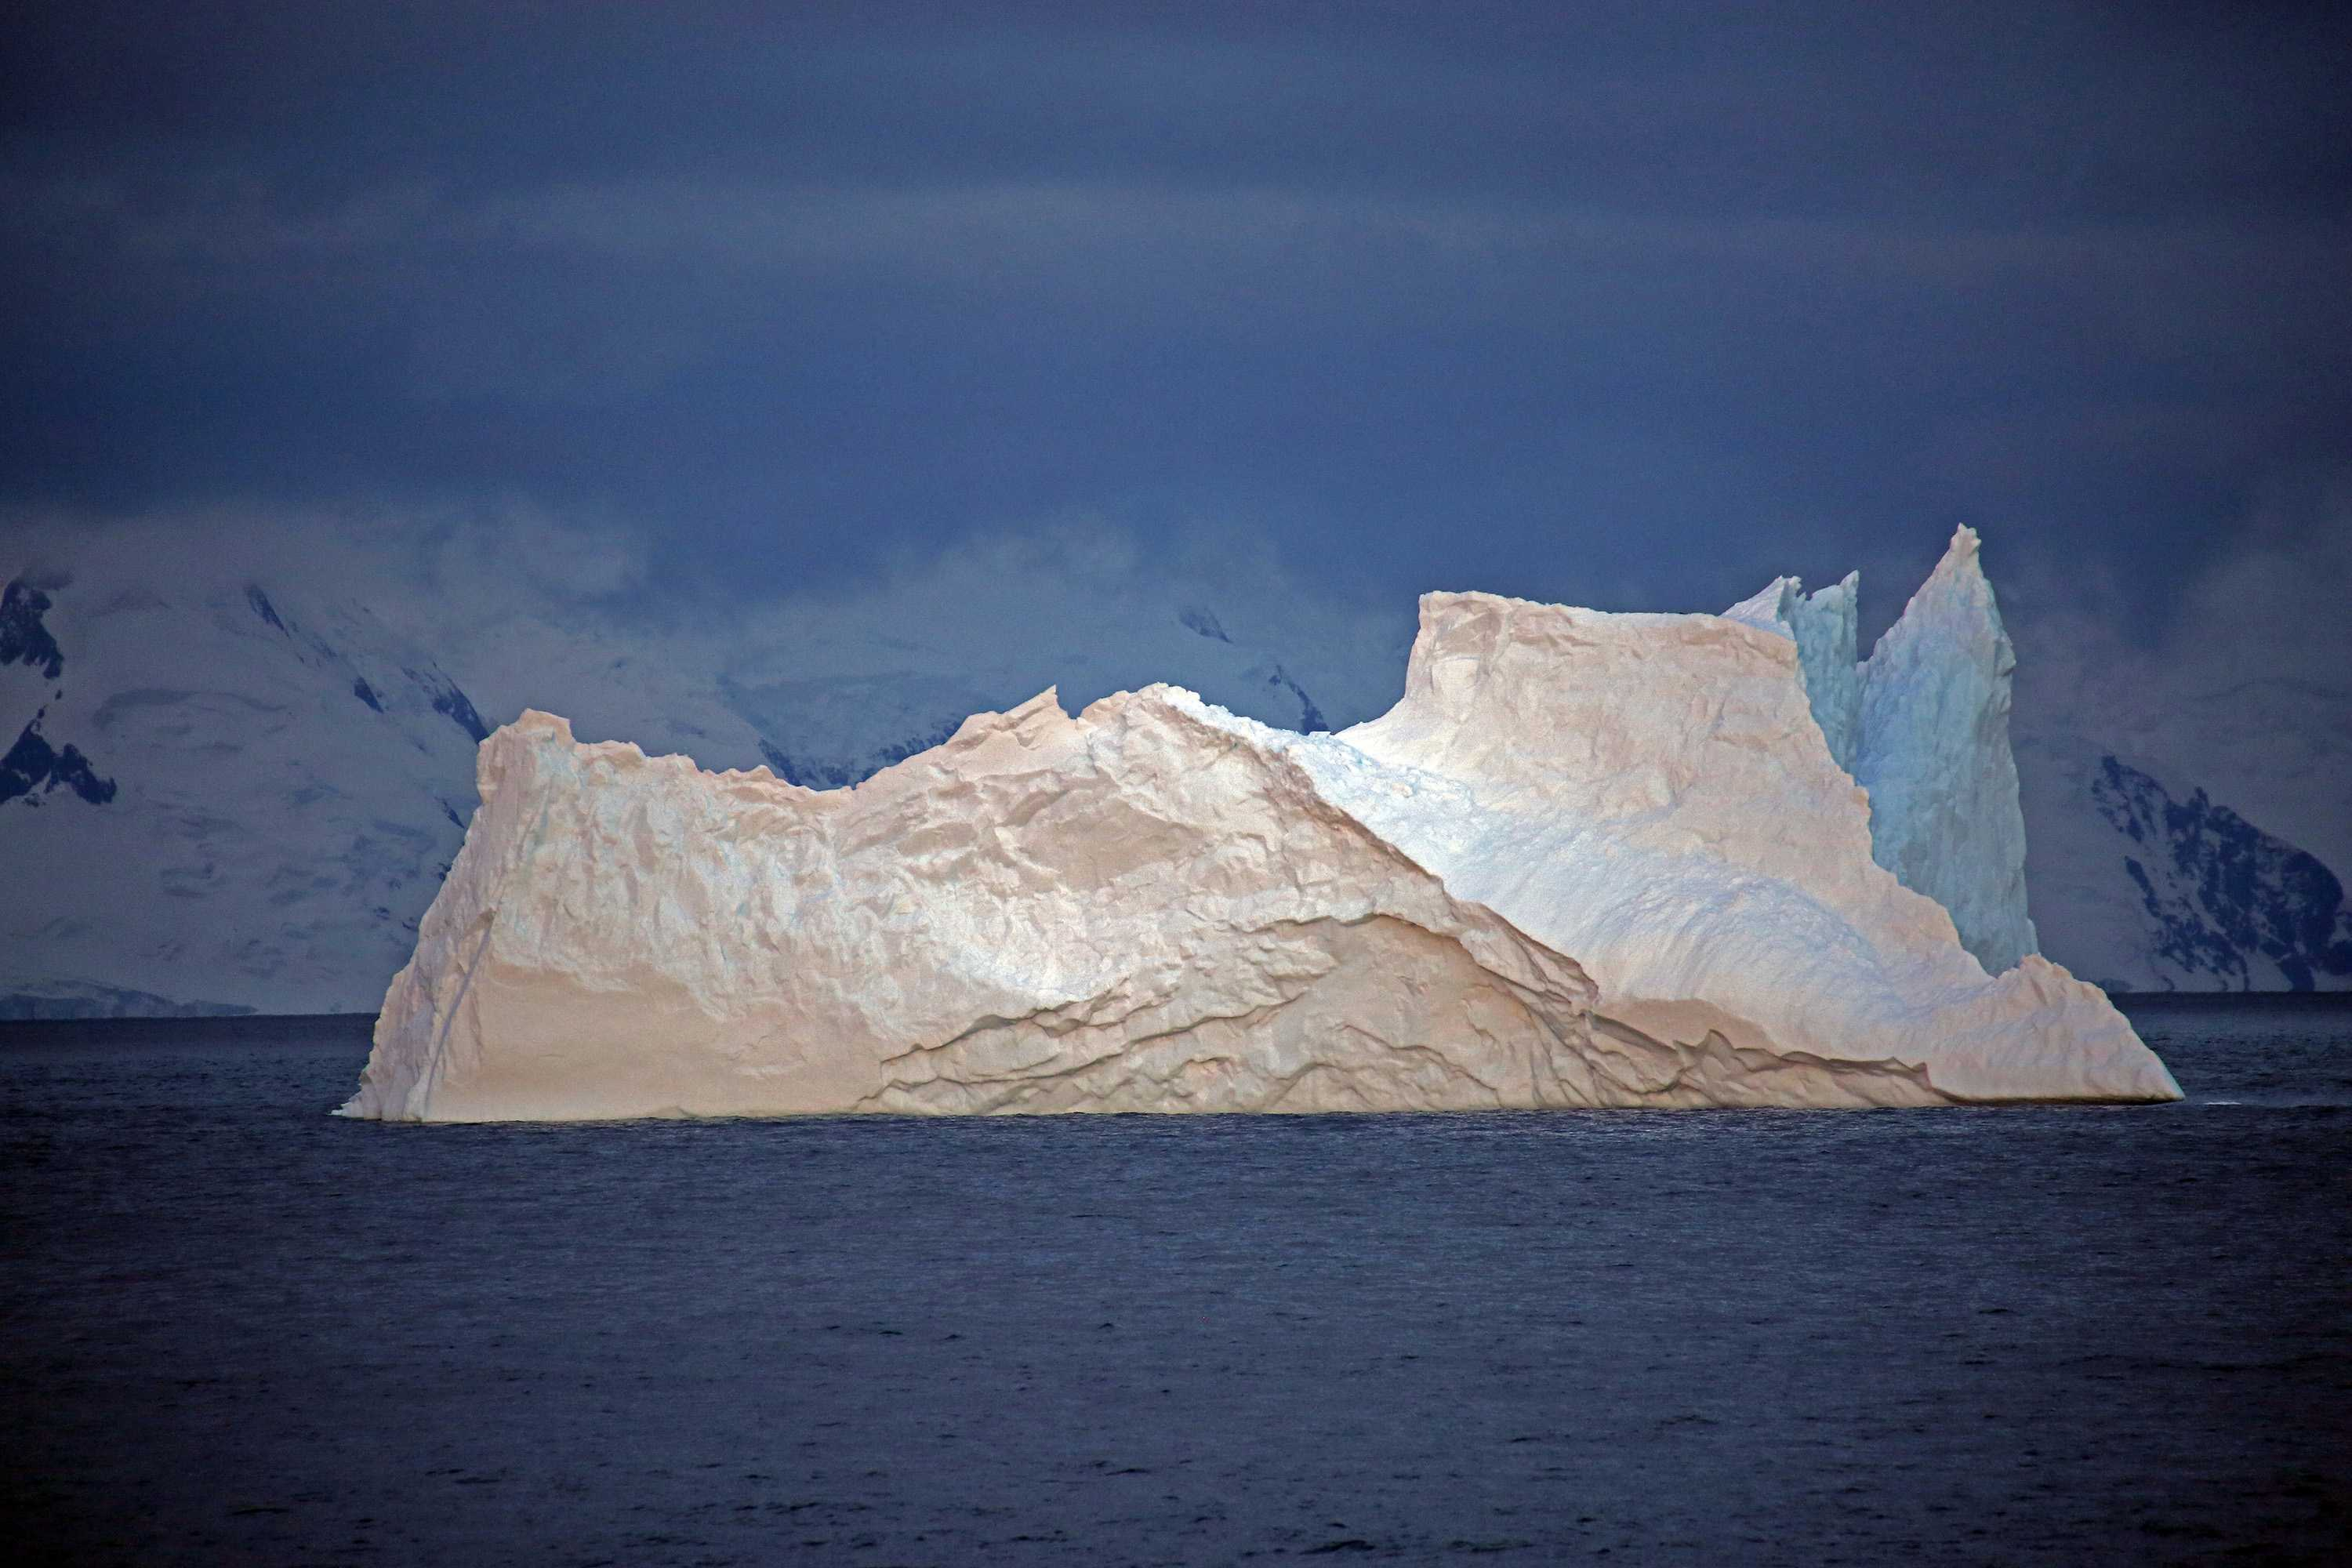 Photo+shows+iceberg